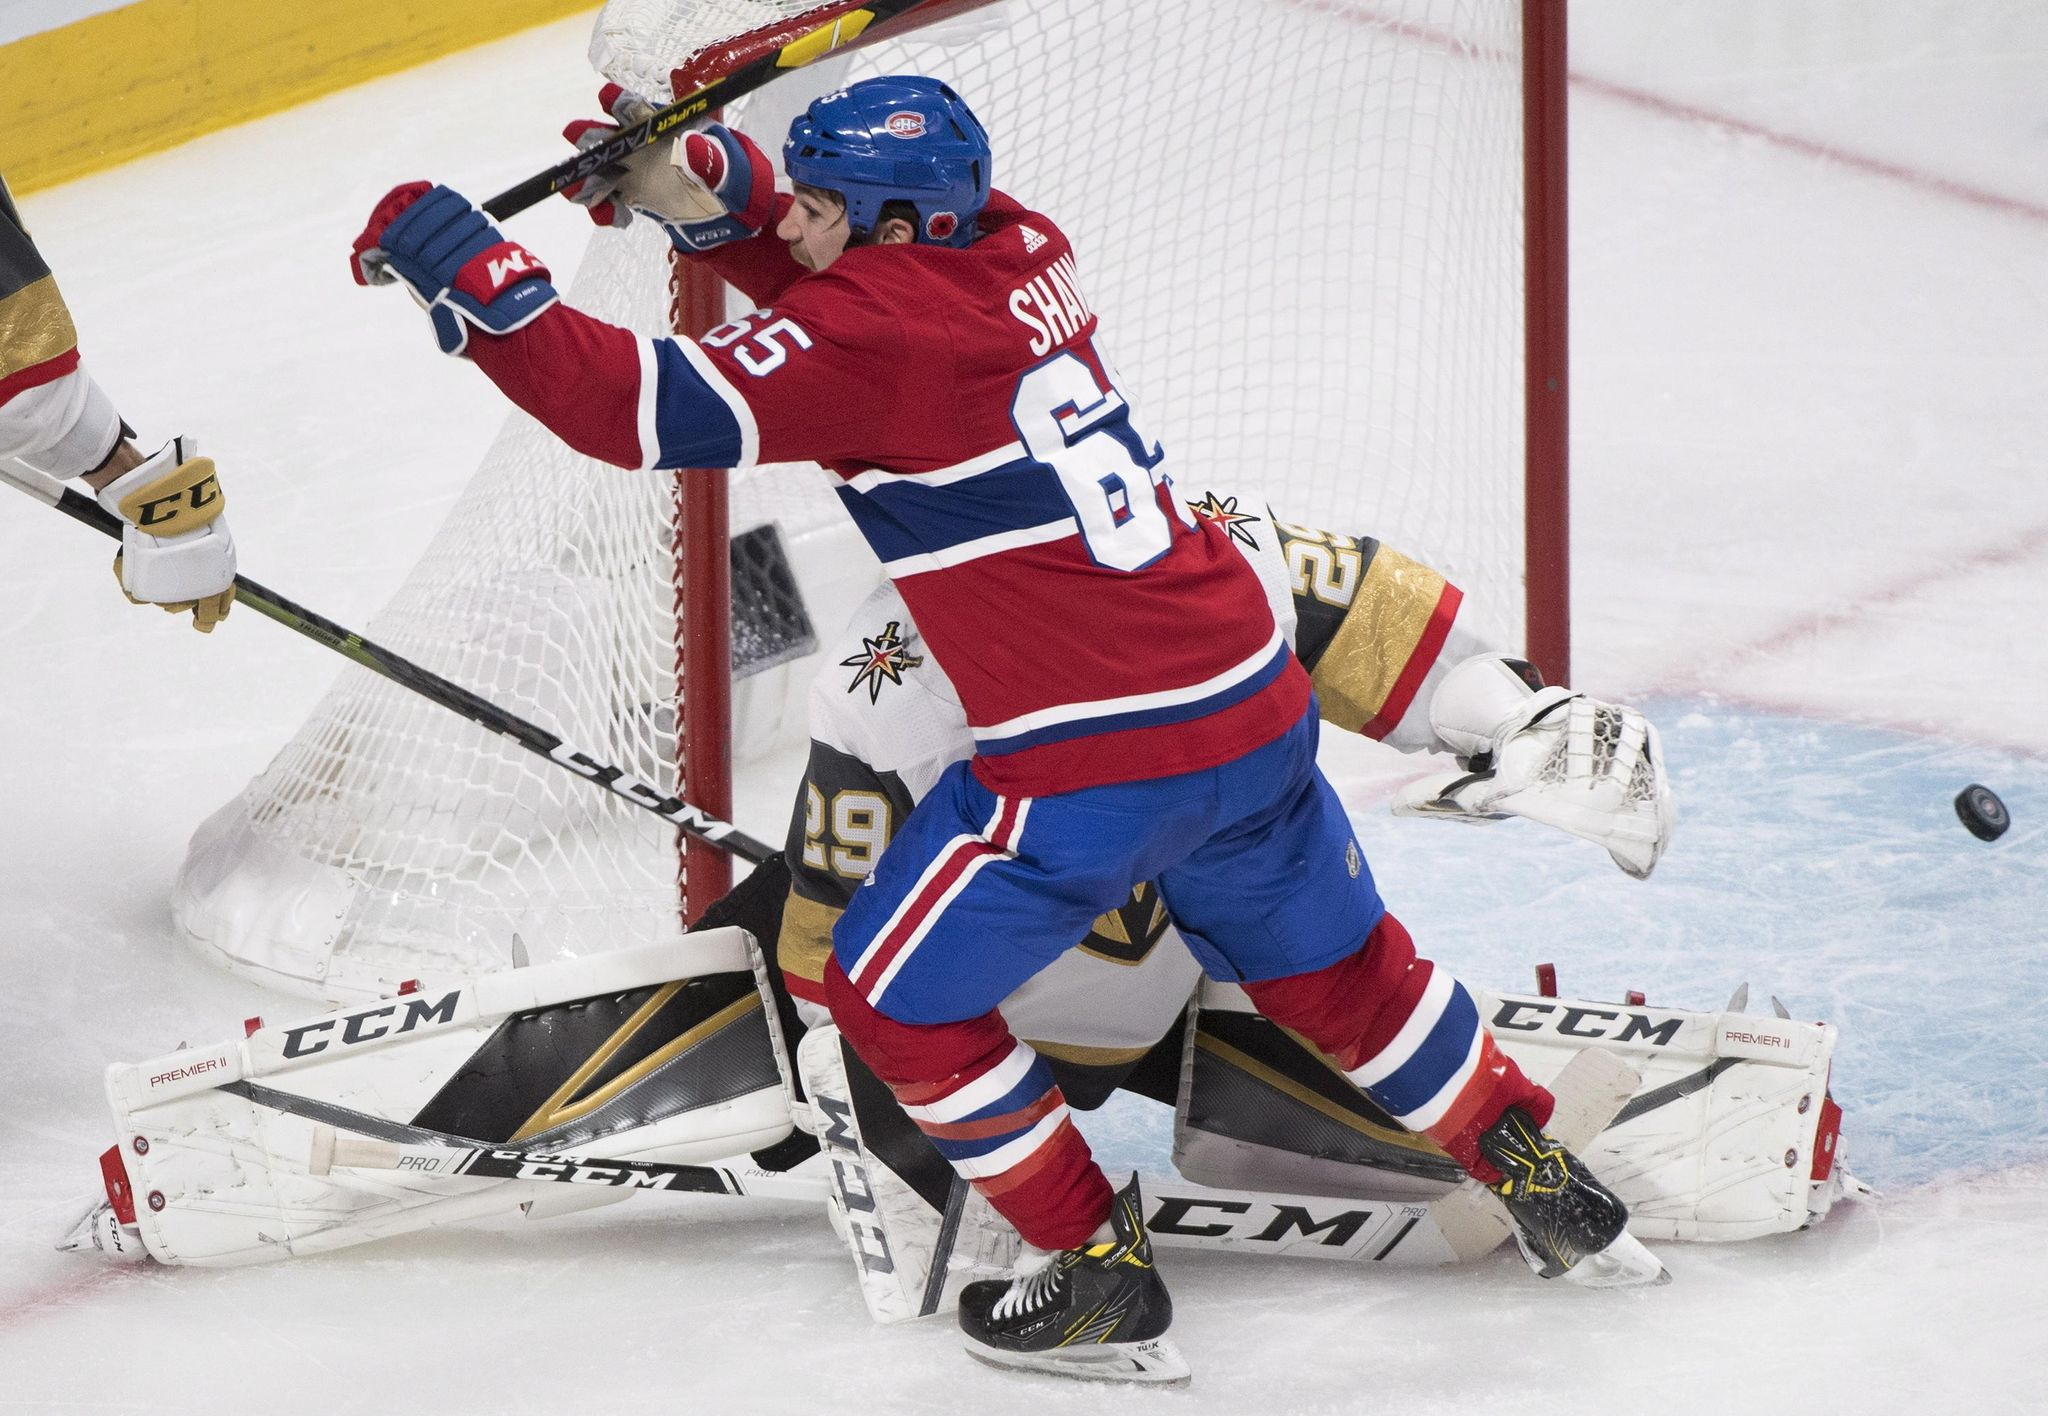 Golden_knights_canadiens_hockey_83927_s2048x1416